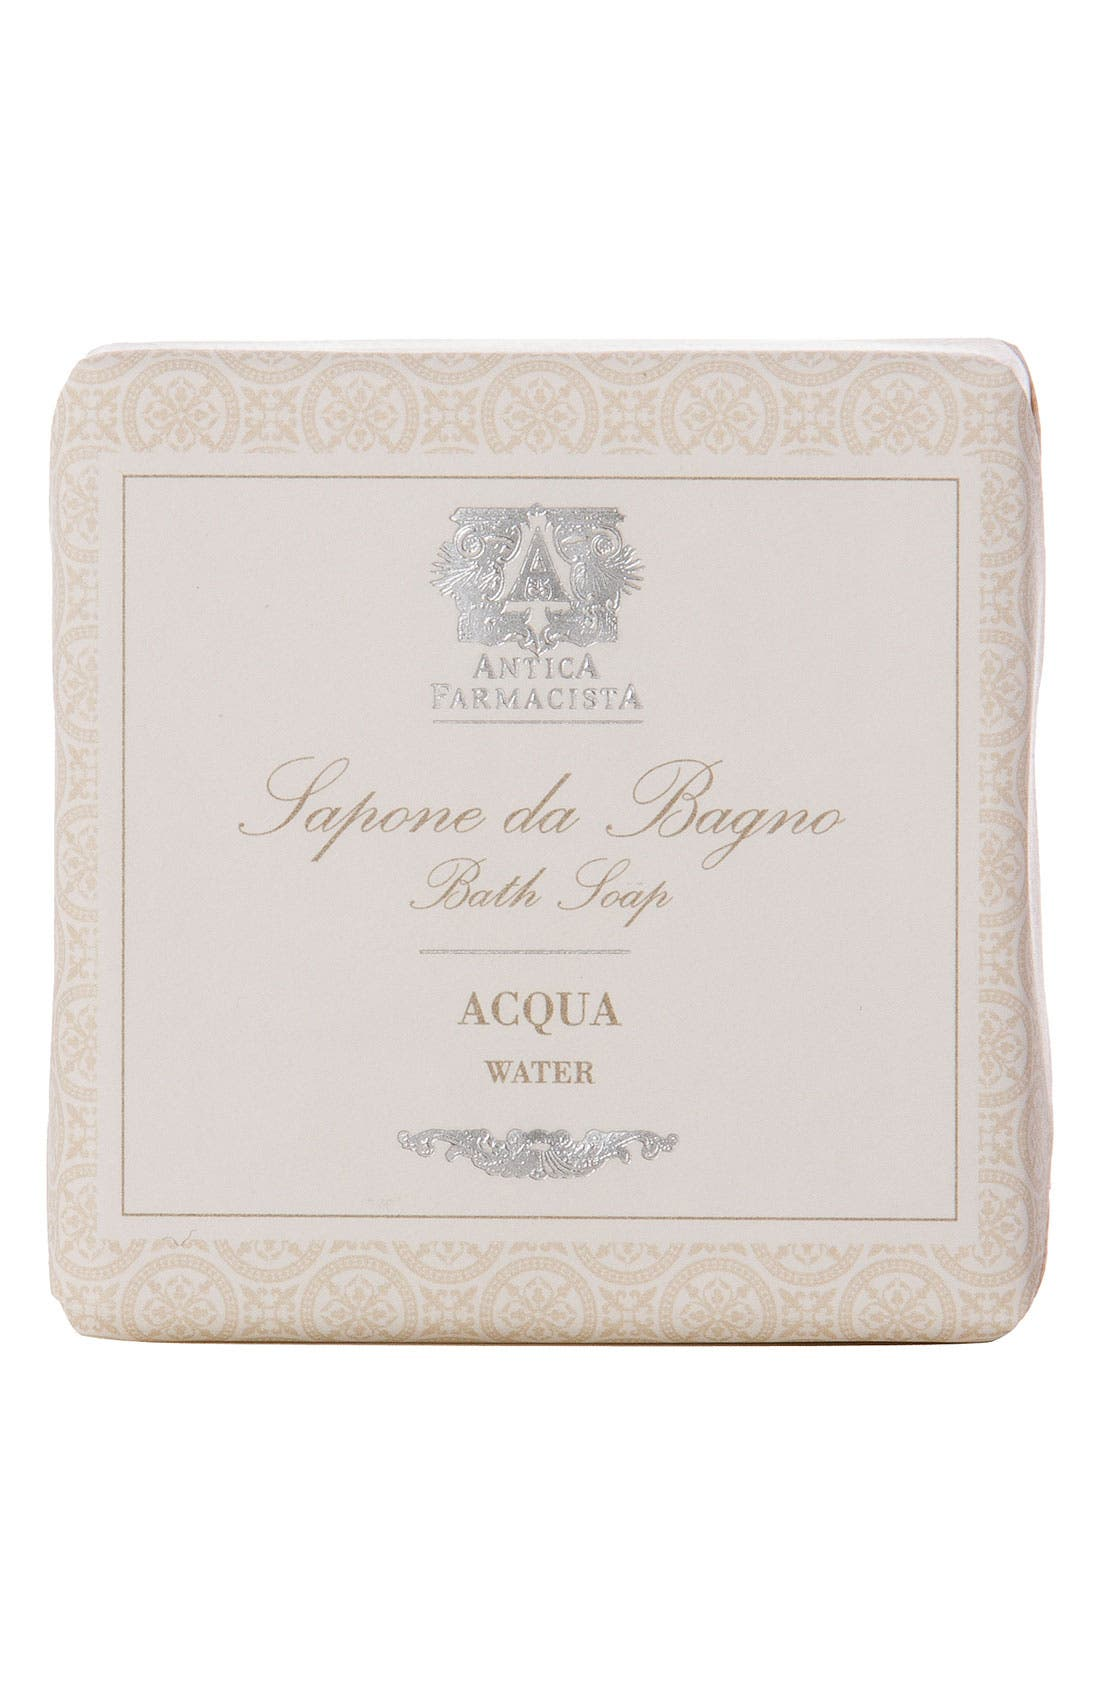 Antica Farmacista 'Acqua' Bar Soap